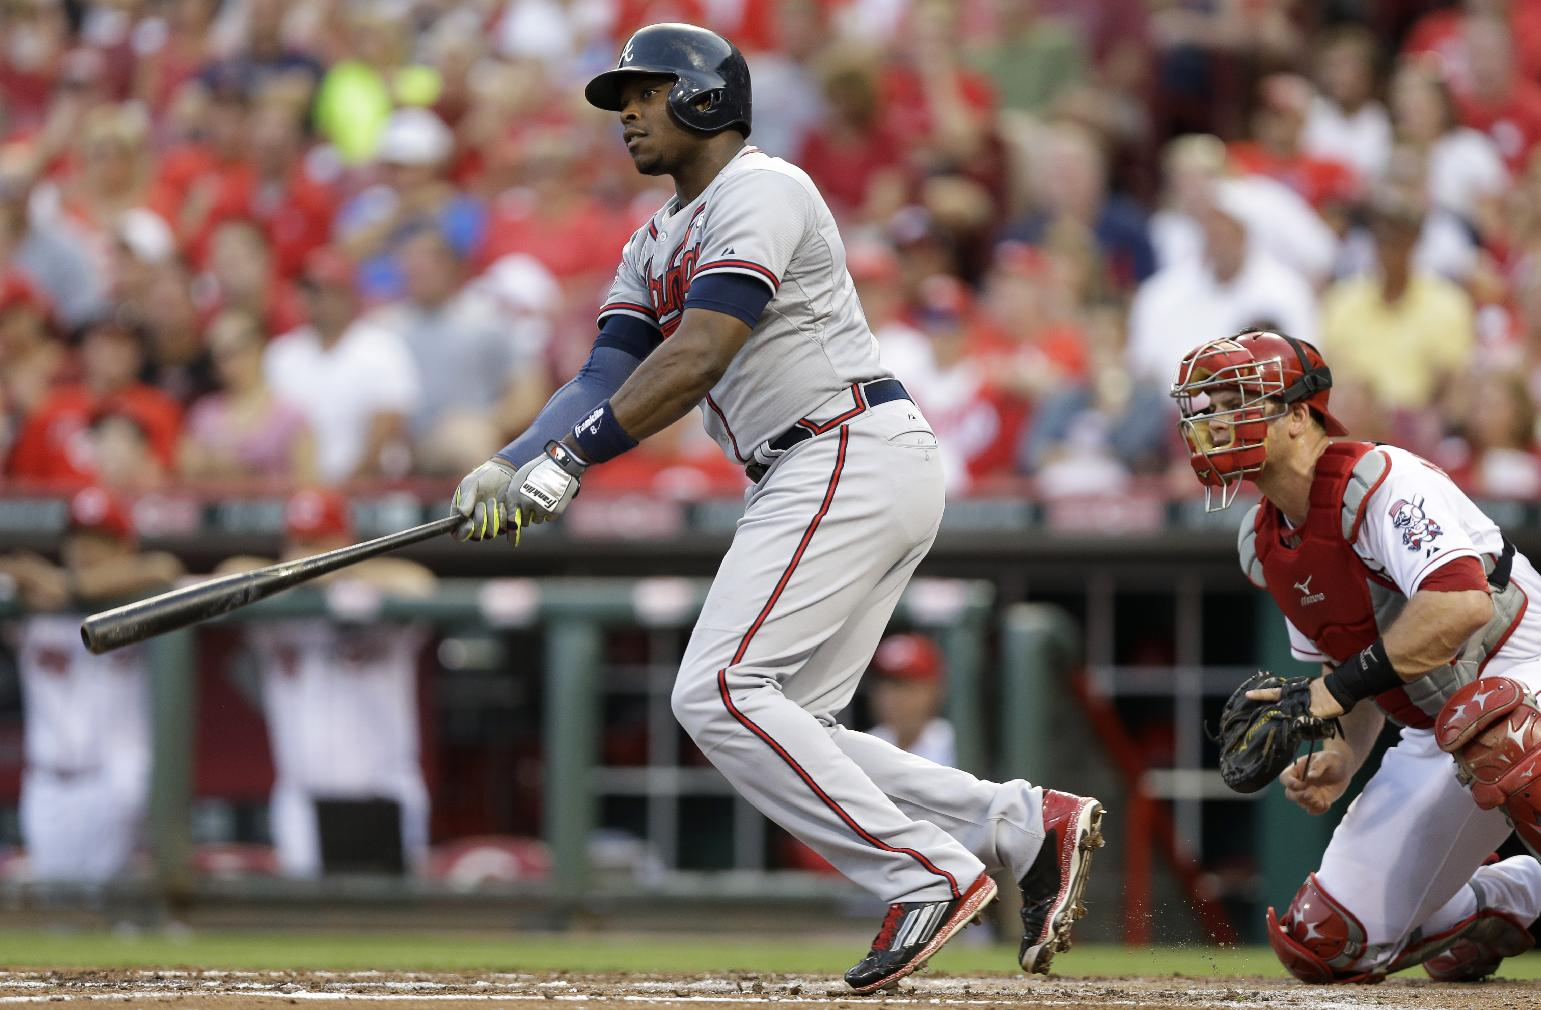 Braves beat Reds 8-0 for 6th win in last 7